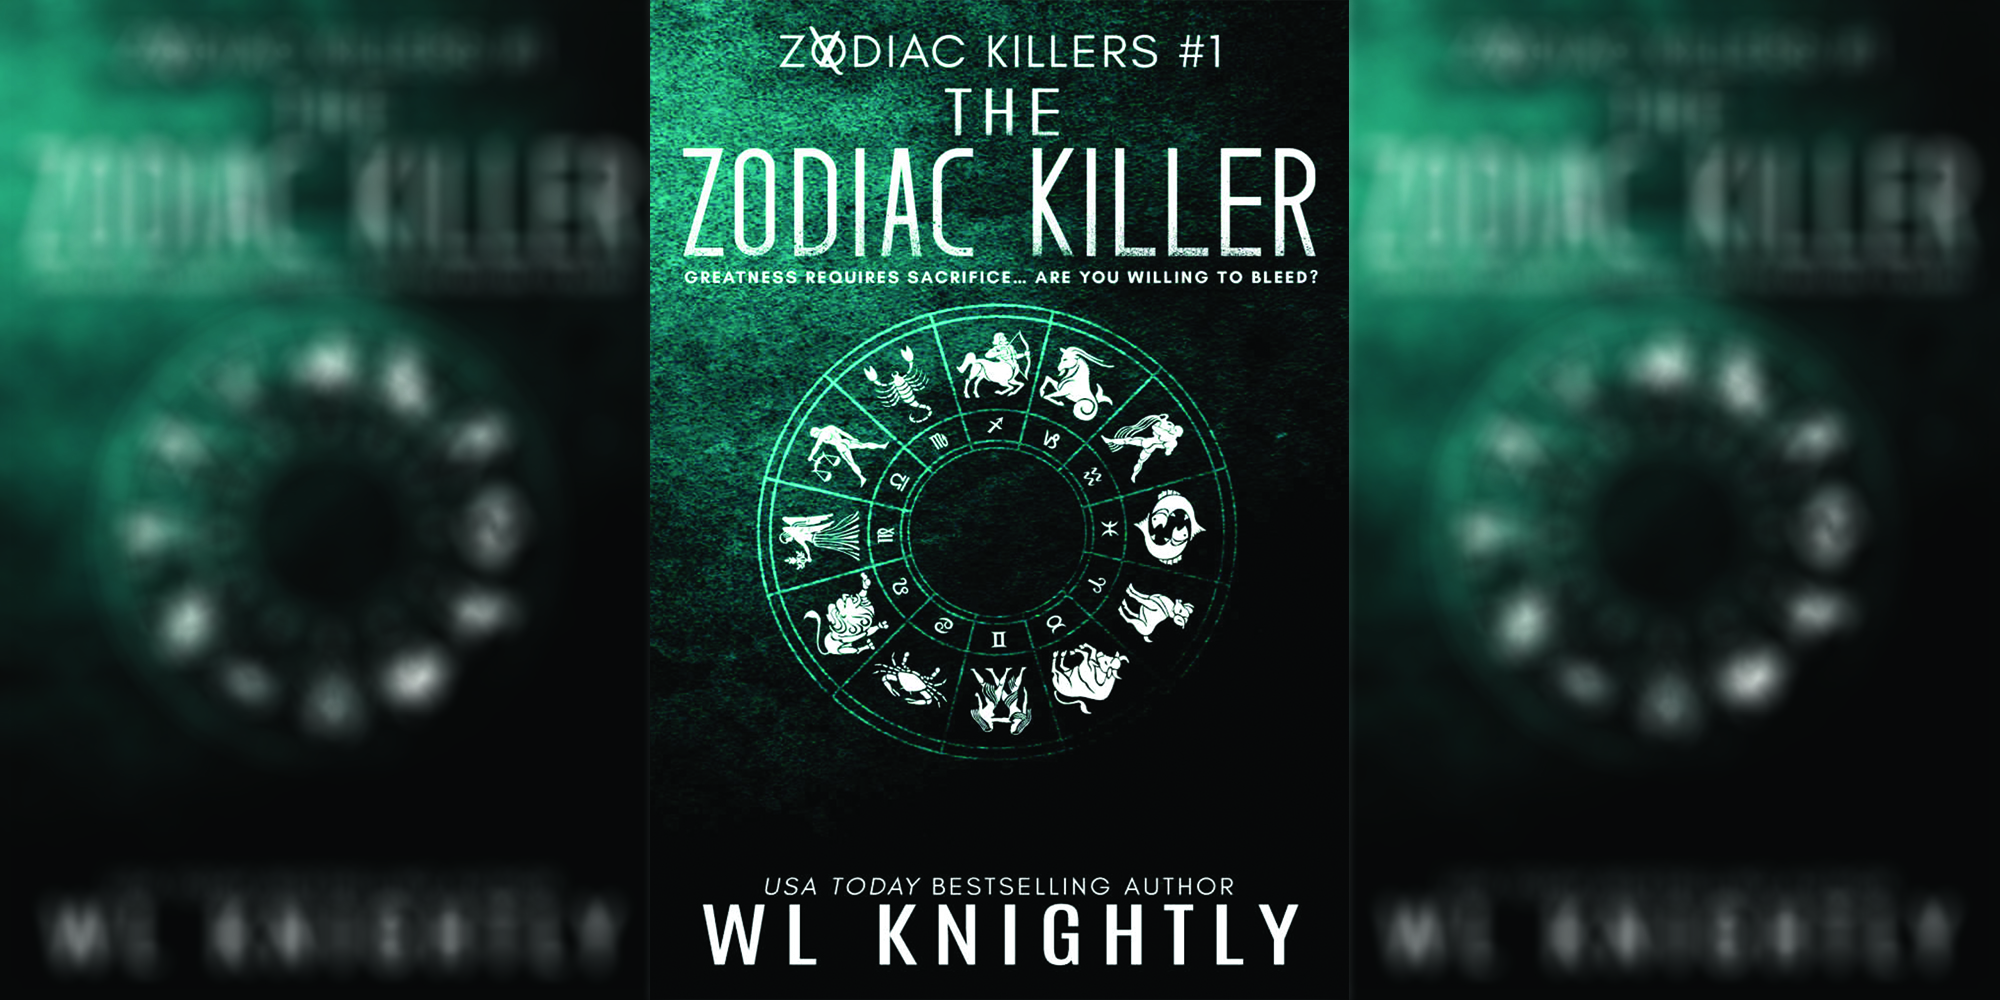 Add 'The Zodiac Killer' to your Kindle eBook library for FREE